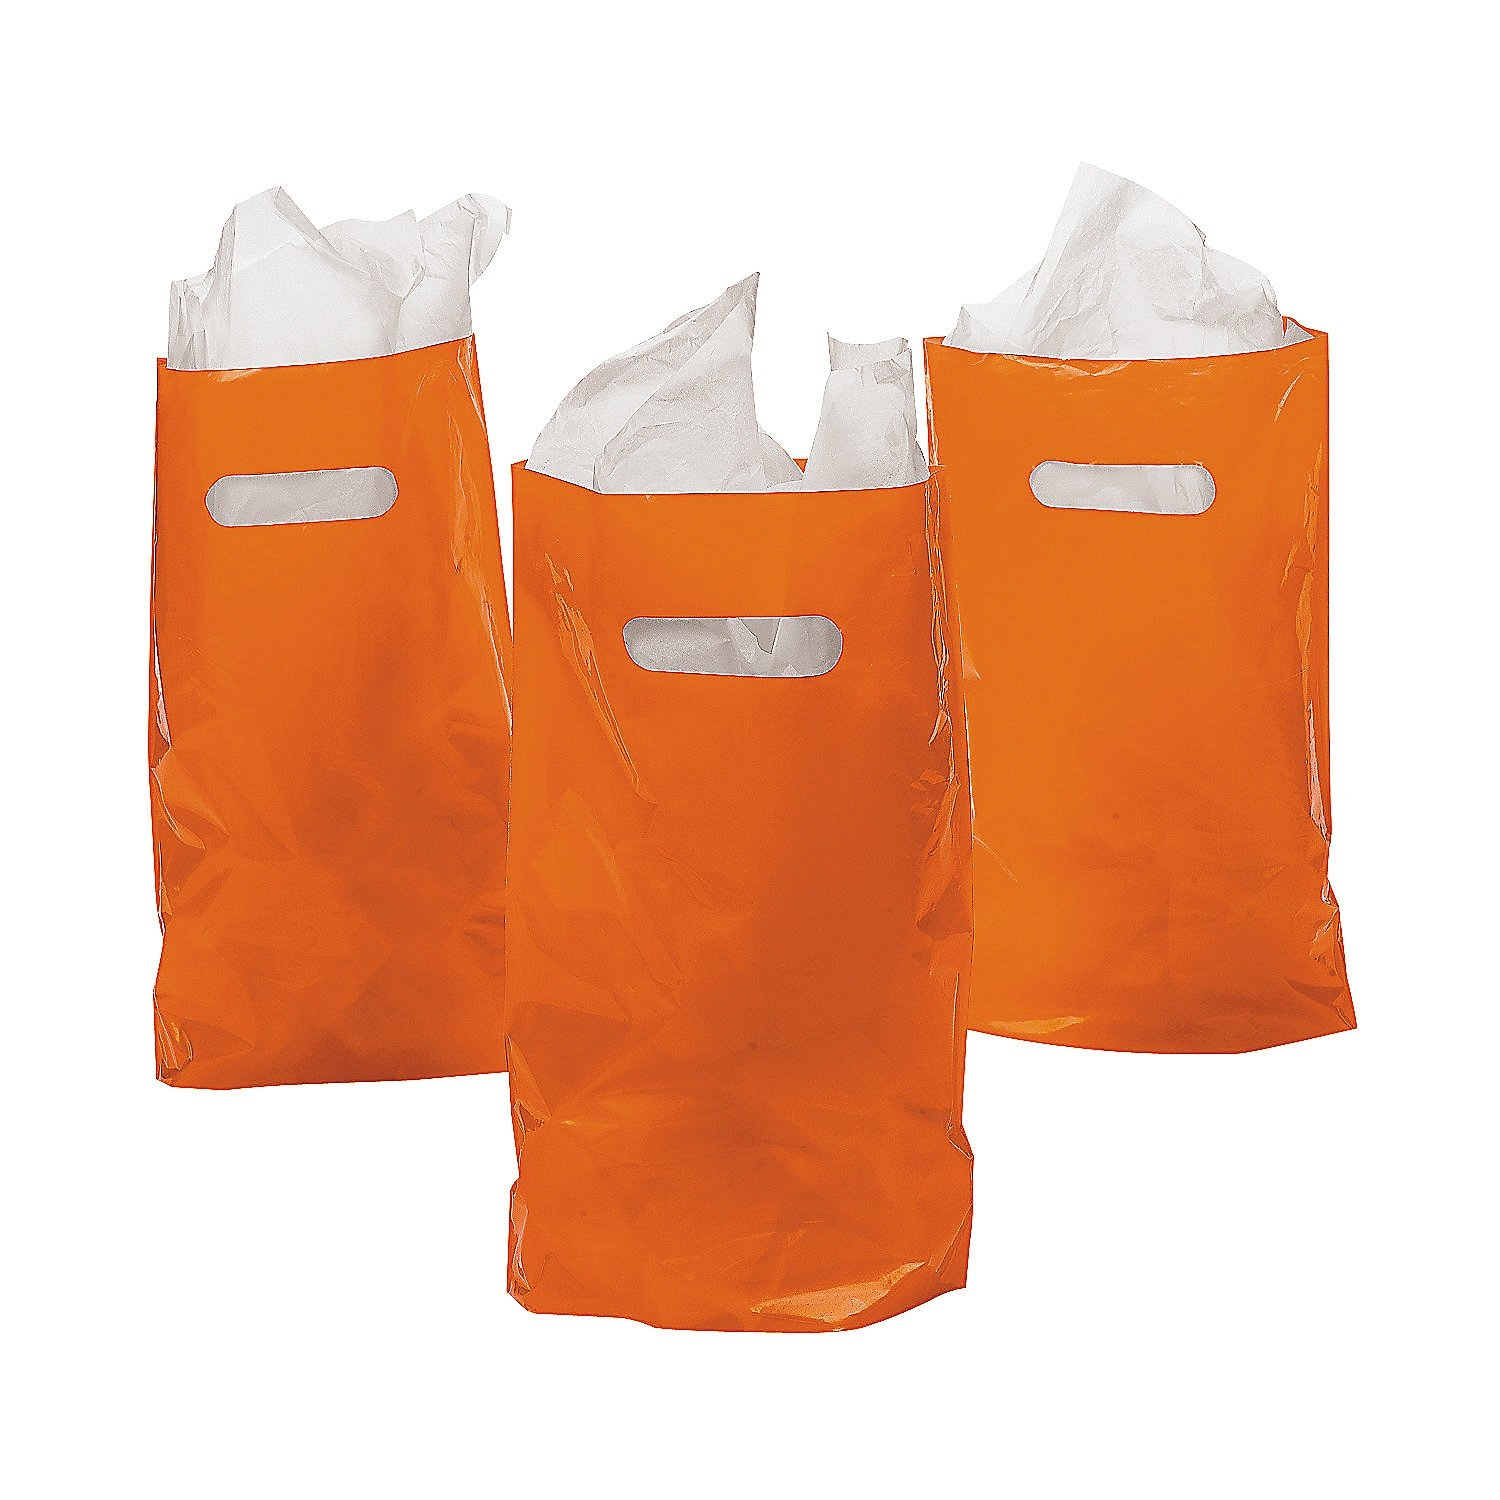 DOMAGRON 8.75 x 12 Orange Treat Package of 50 Goody Bag